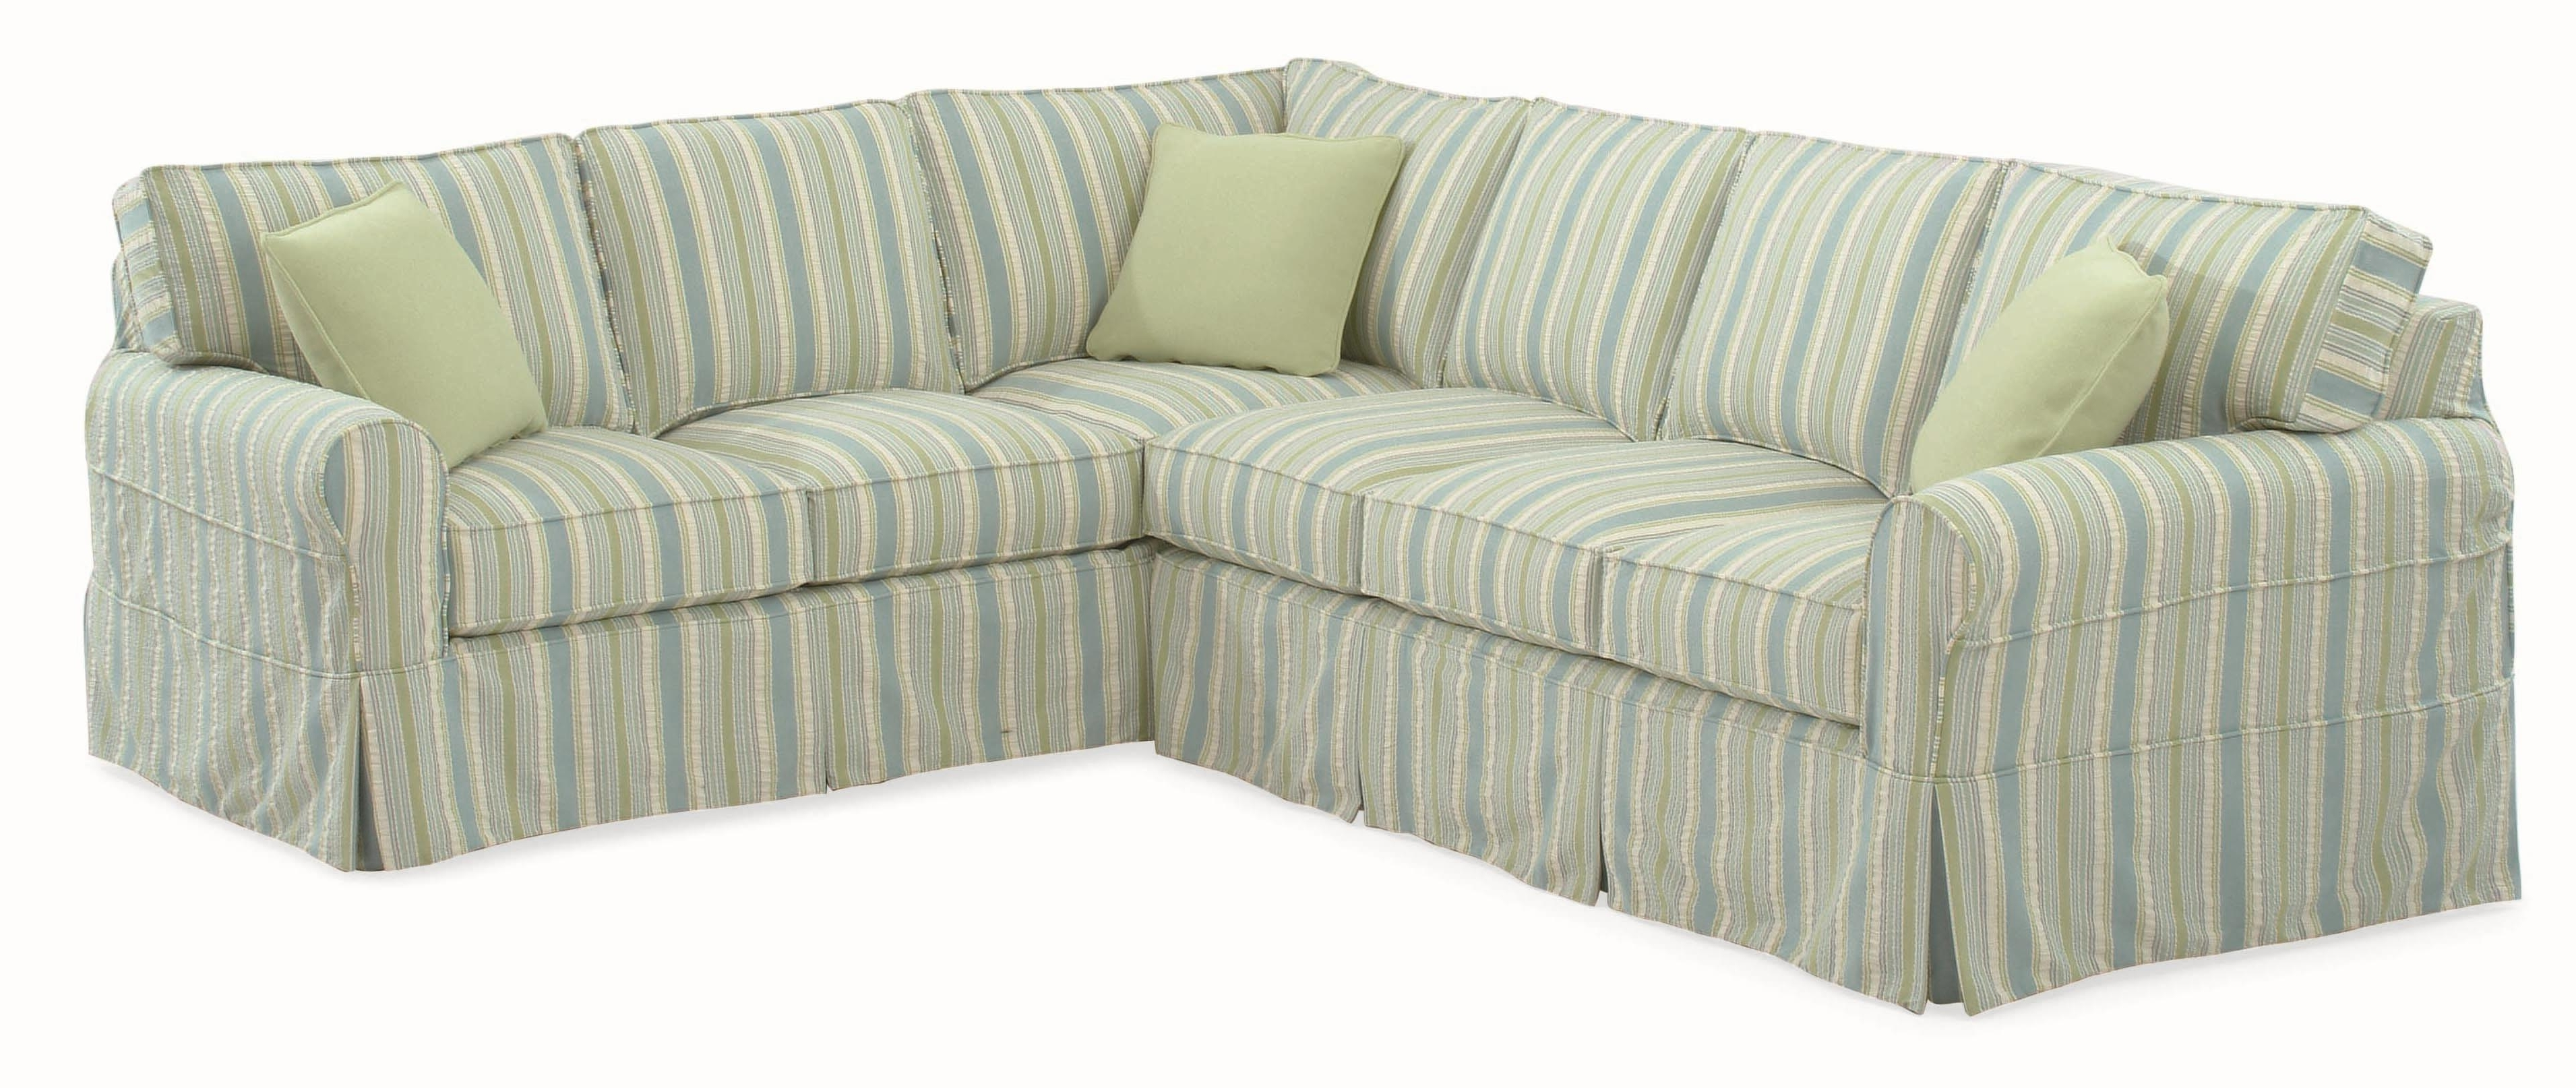 Latest Braxton Sofas For Braxton Culler 728 Casual Sectional Sofa With Rolled Arms And (View 14 of 20)